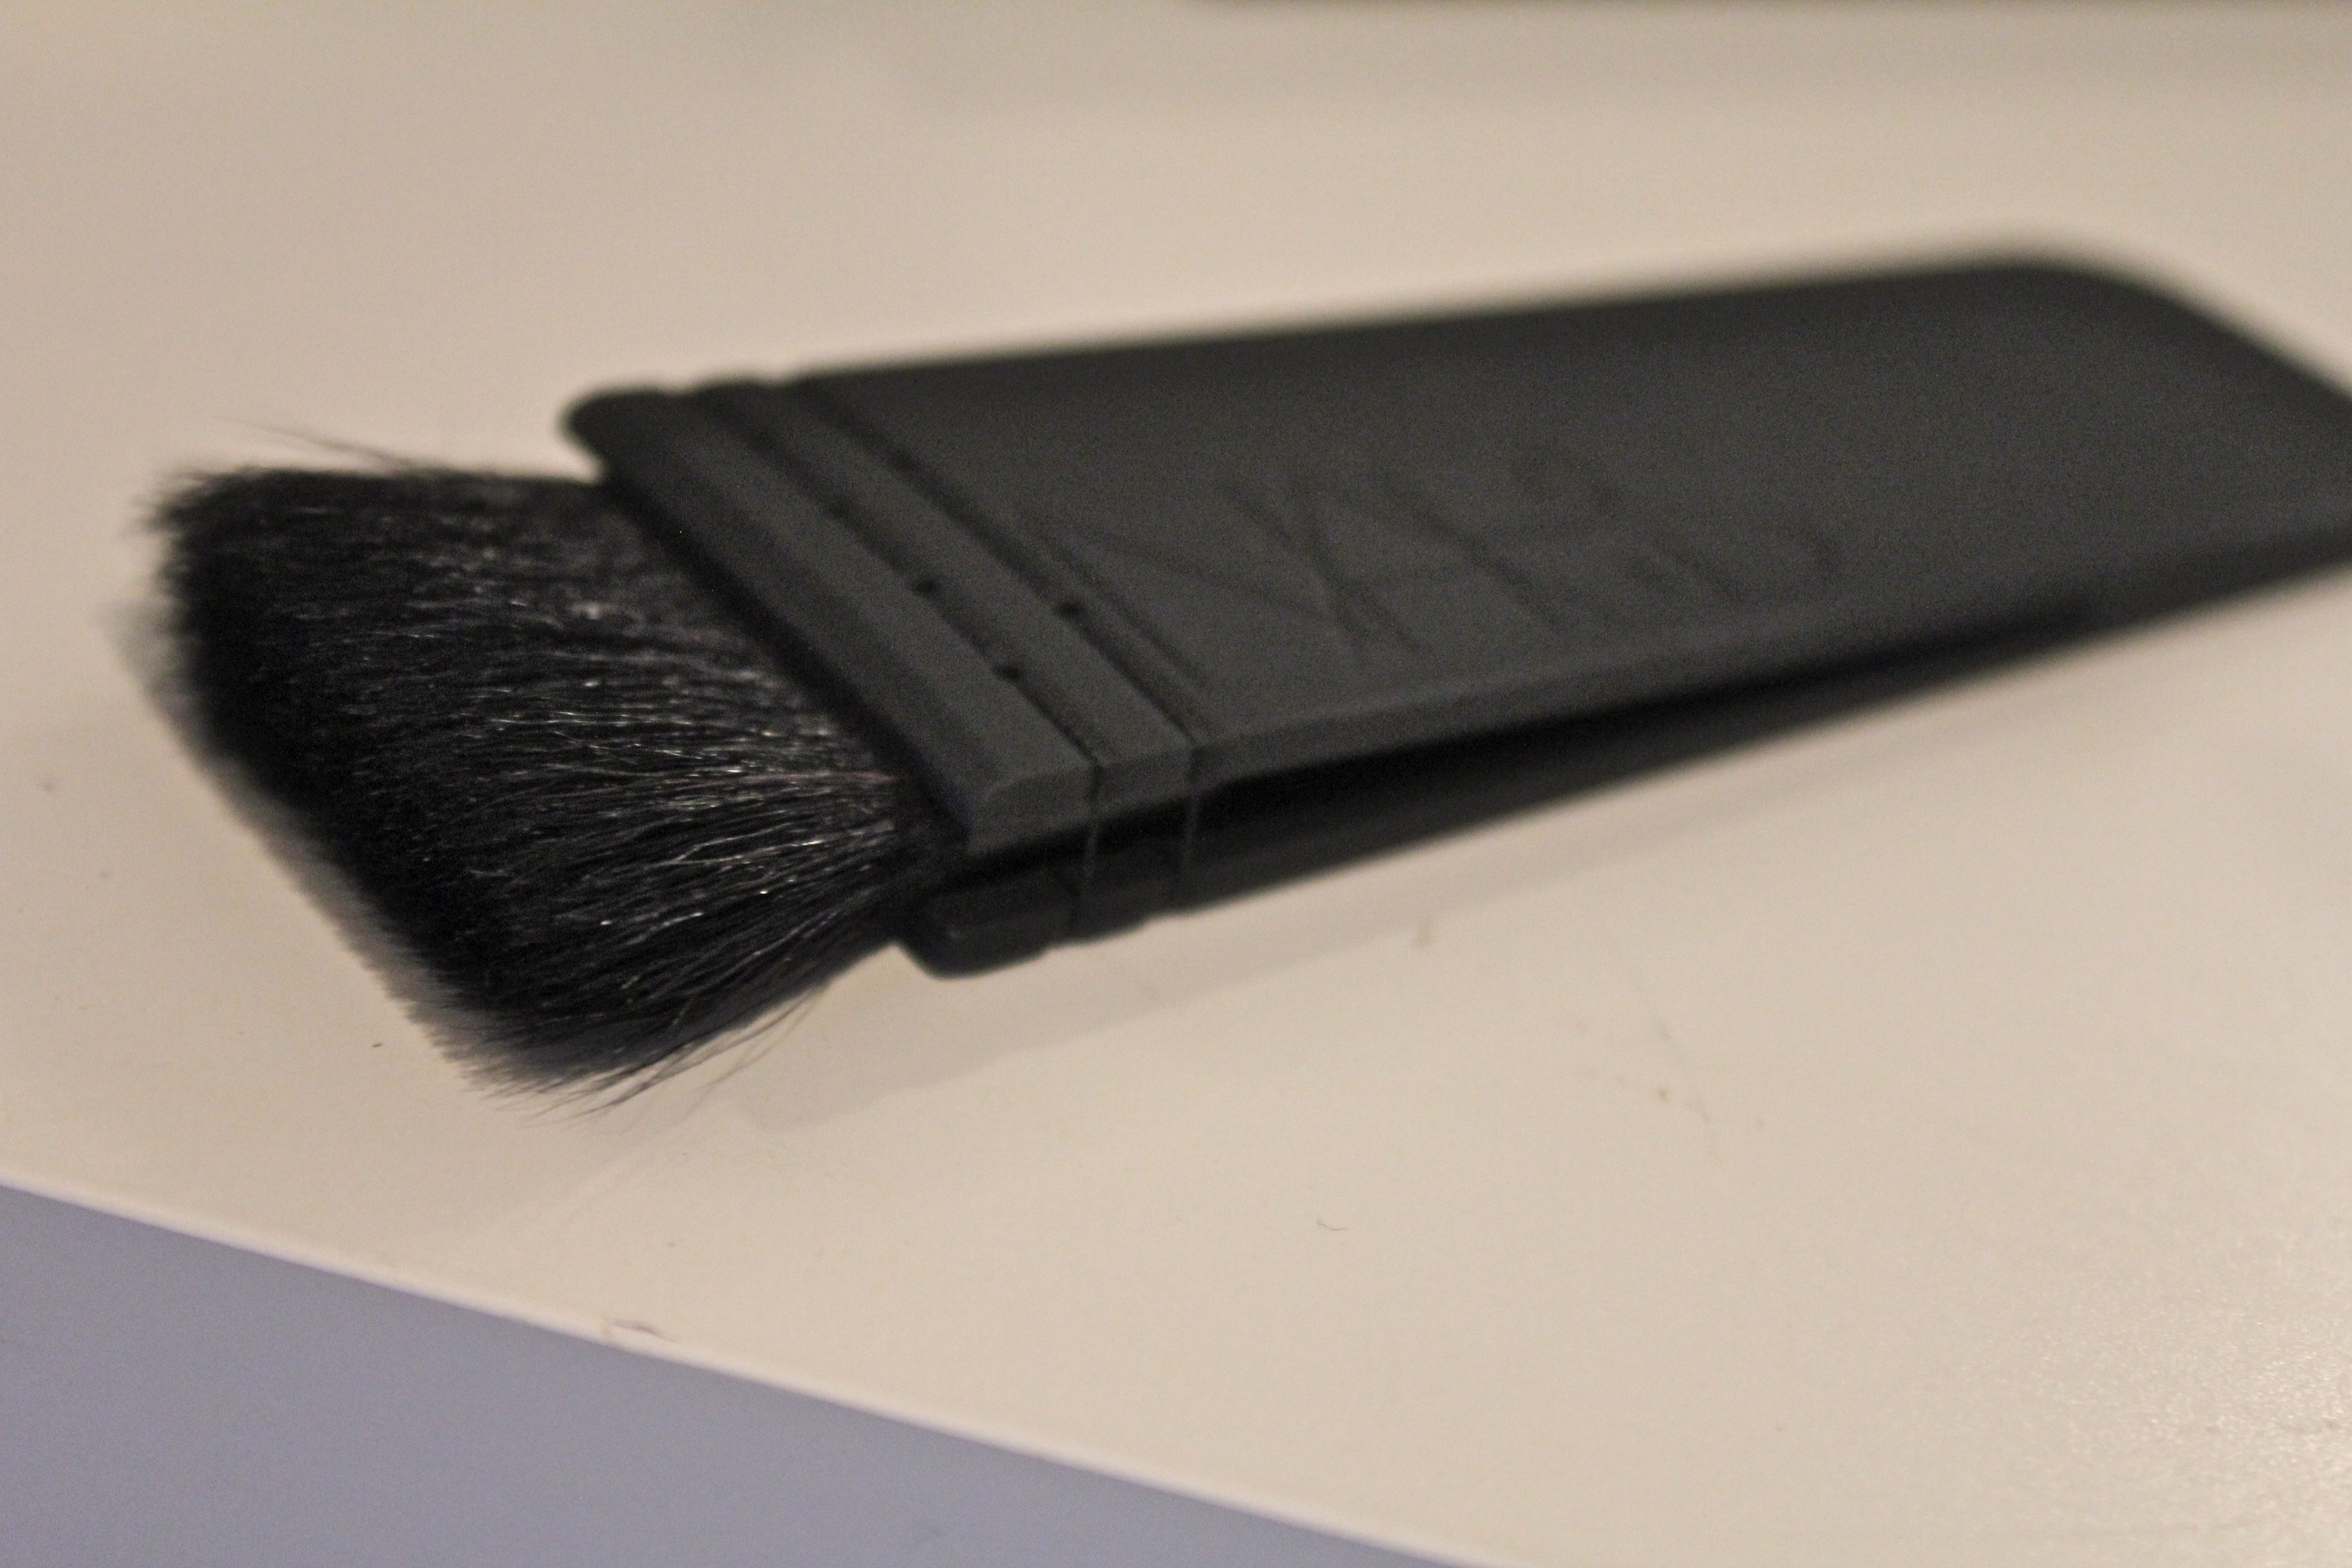 Nars contour brush ita